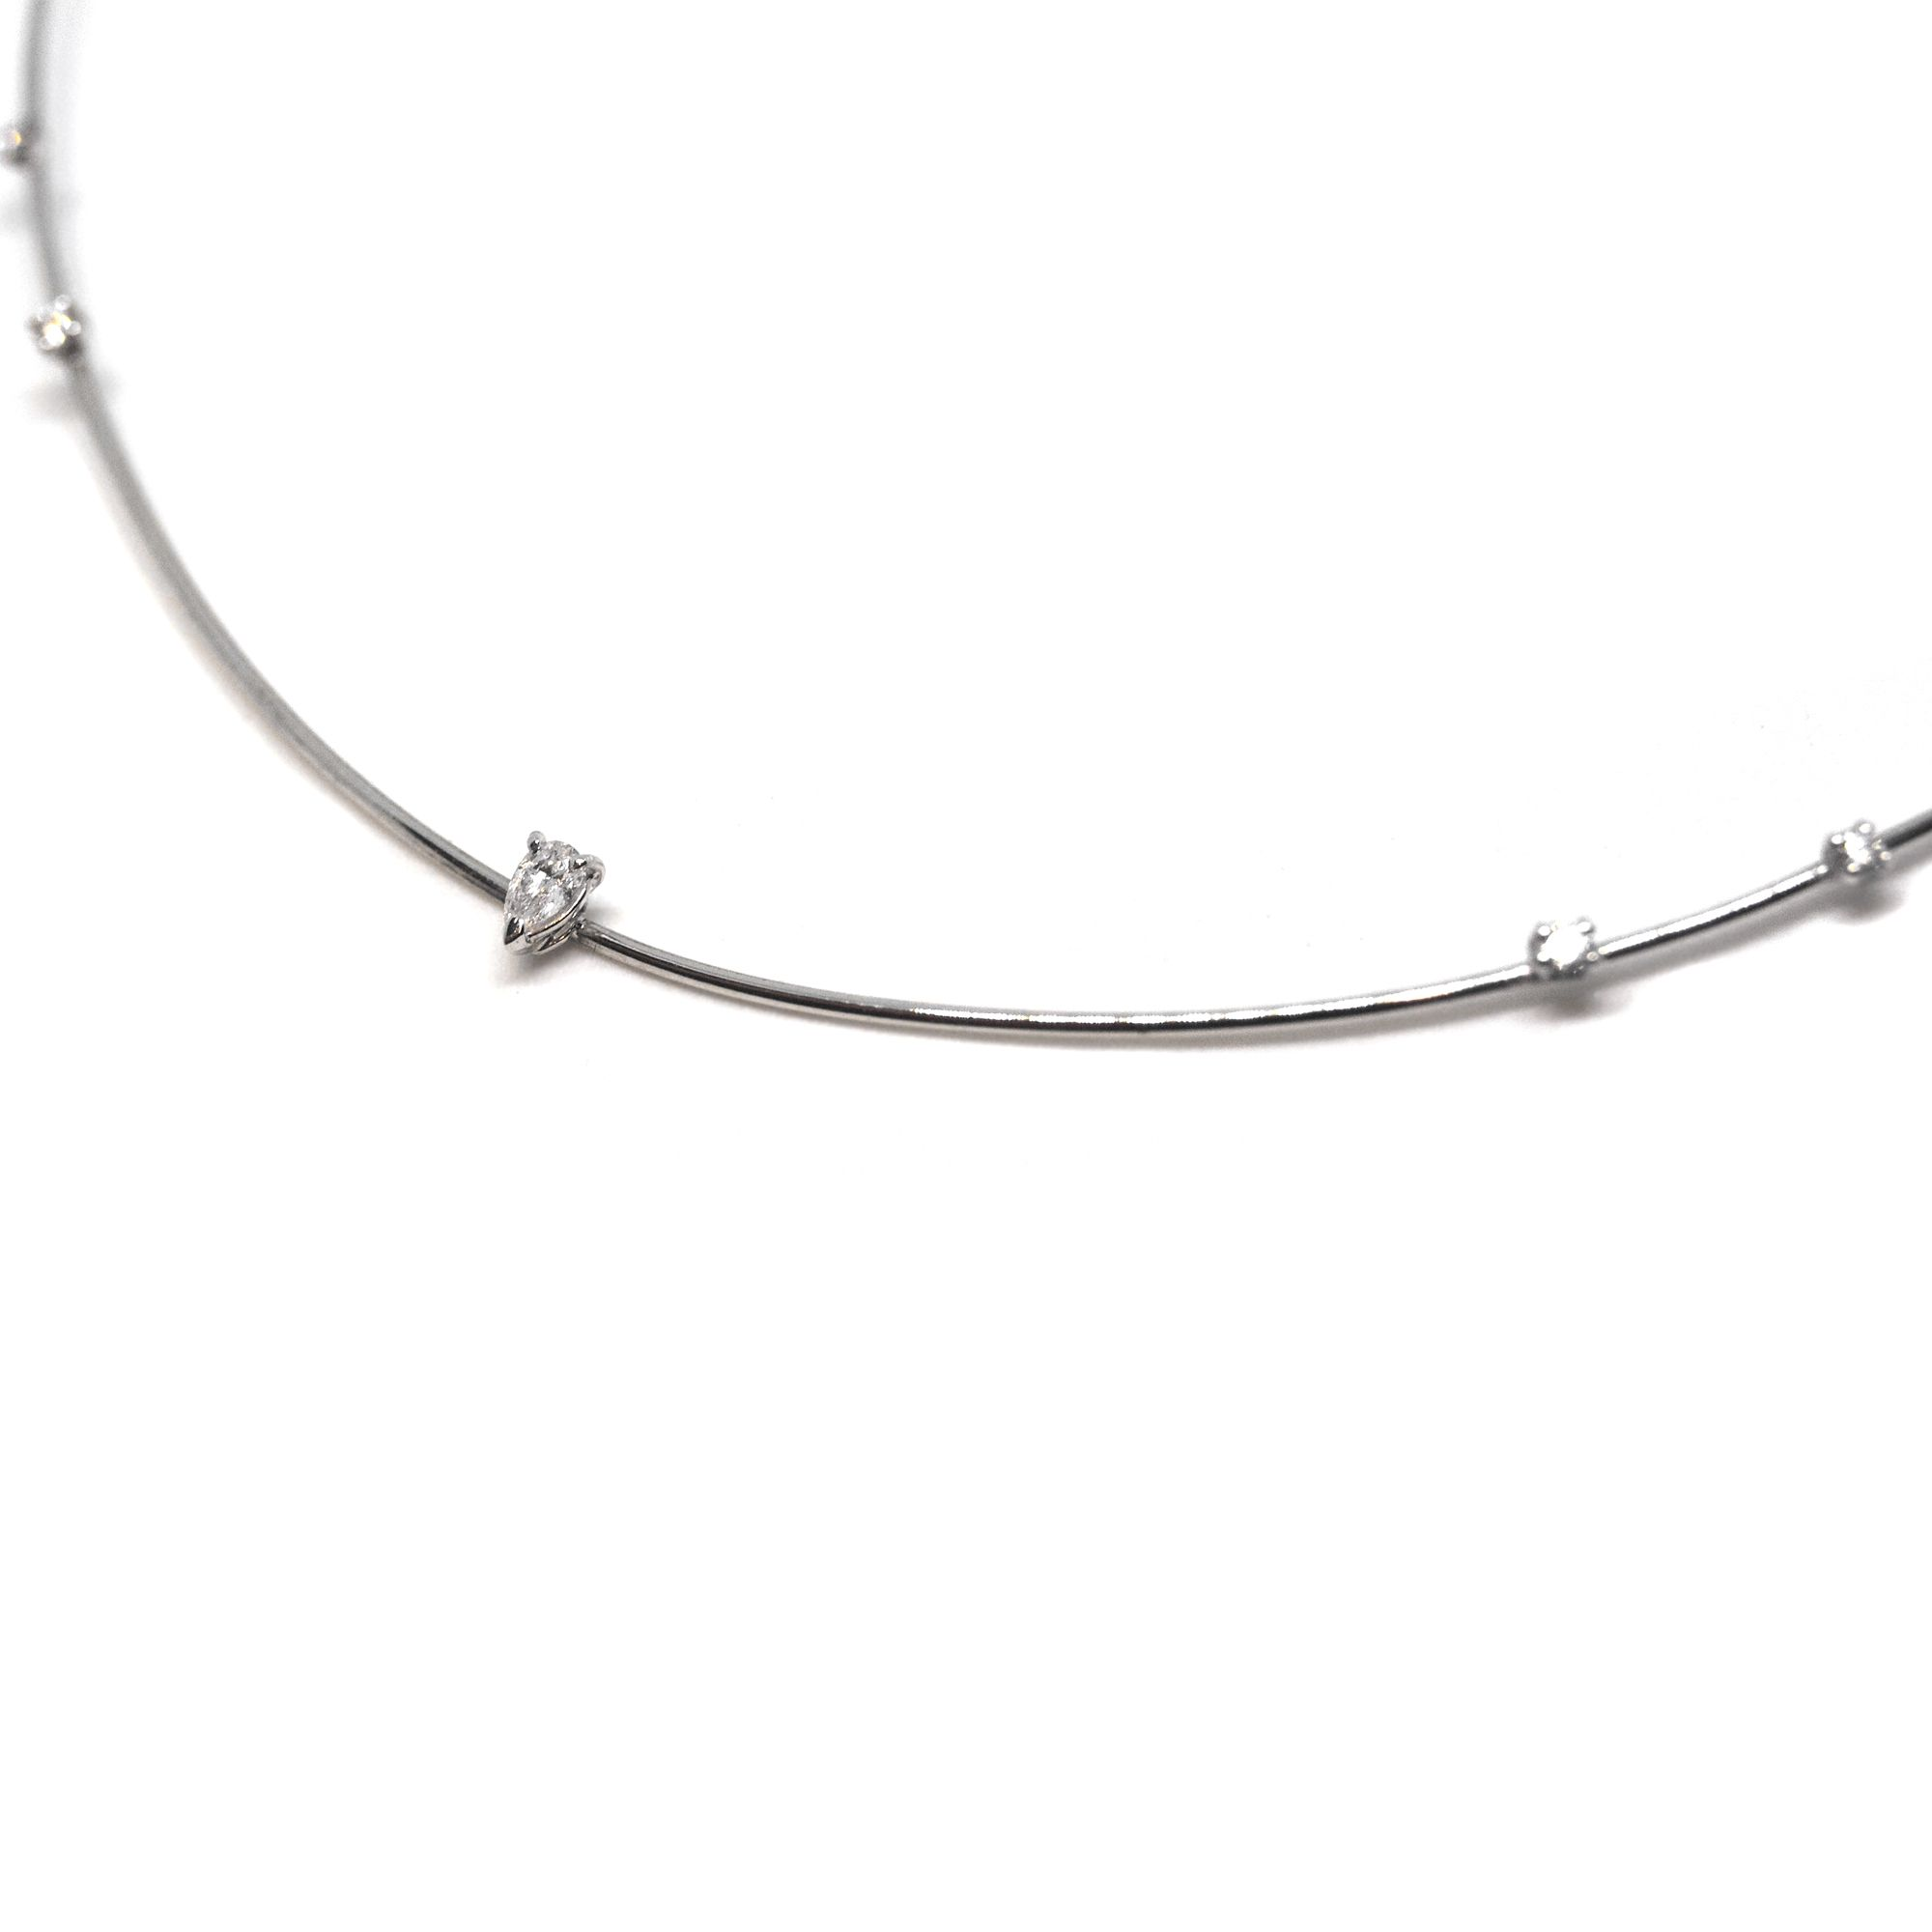 White gold 'Balance' cocker White gold necklace with white diamonds